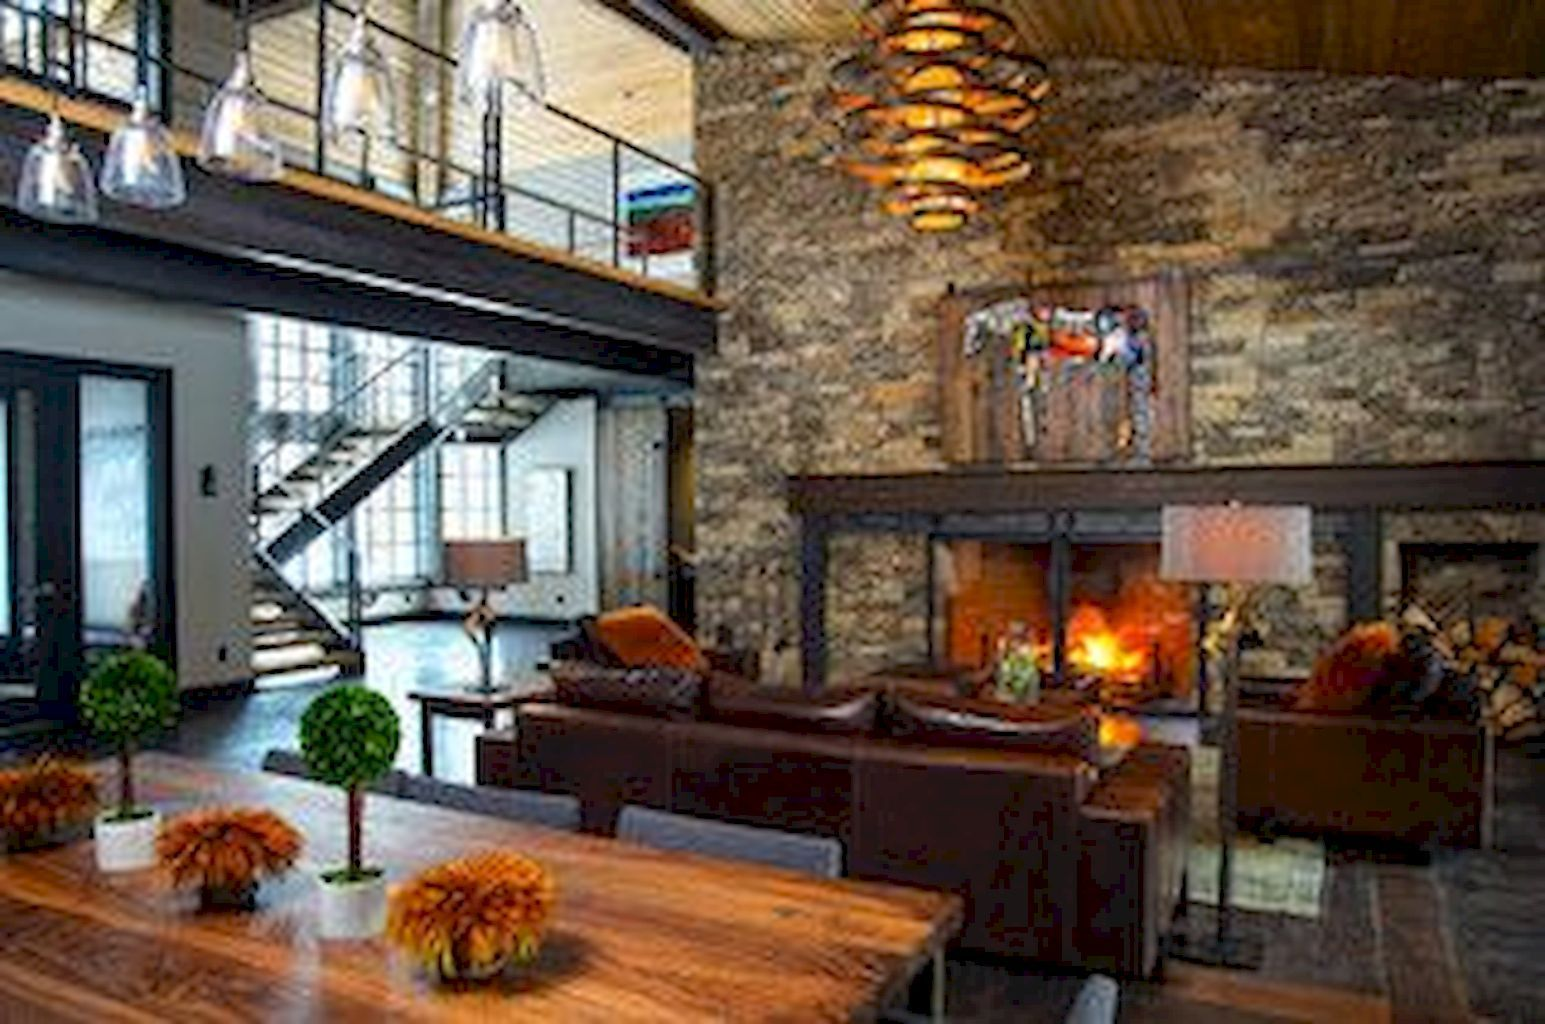 80 Contemporary Living Room Decoration Ideas Home To Z Modern Rustic Living Room Industrial Living Room Design Rustic Living Room Contemporary rustic living room